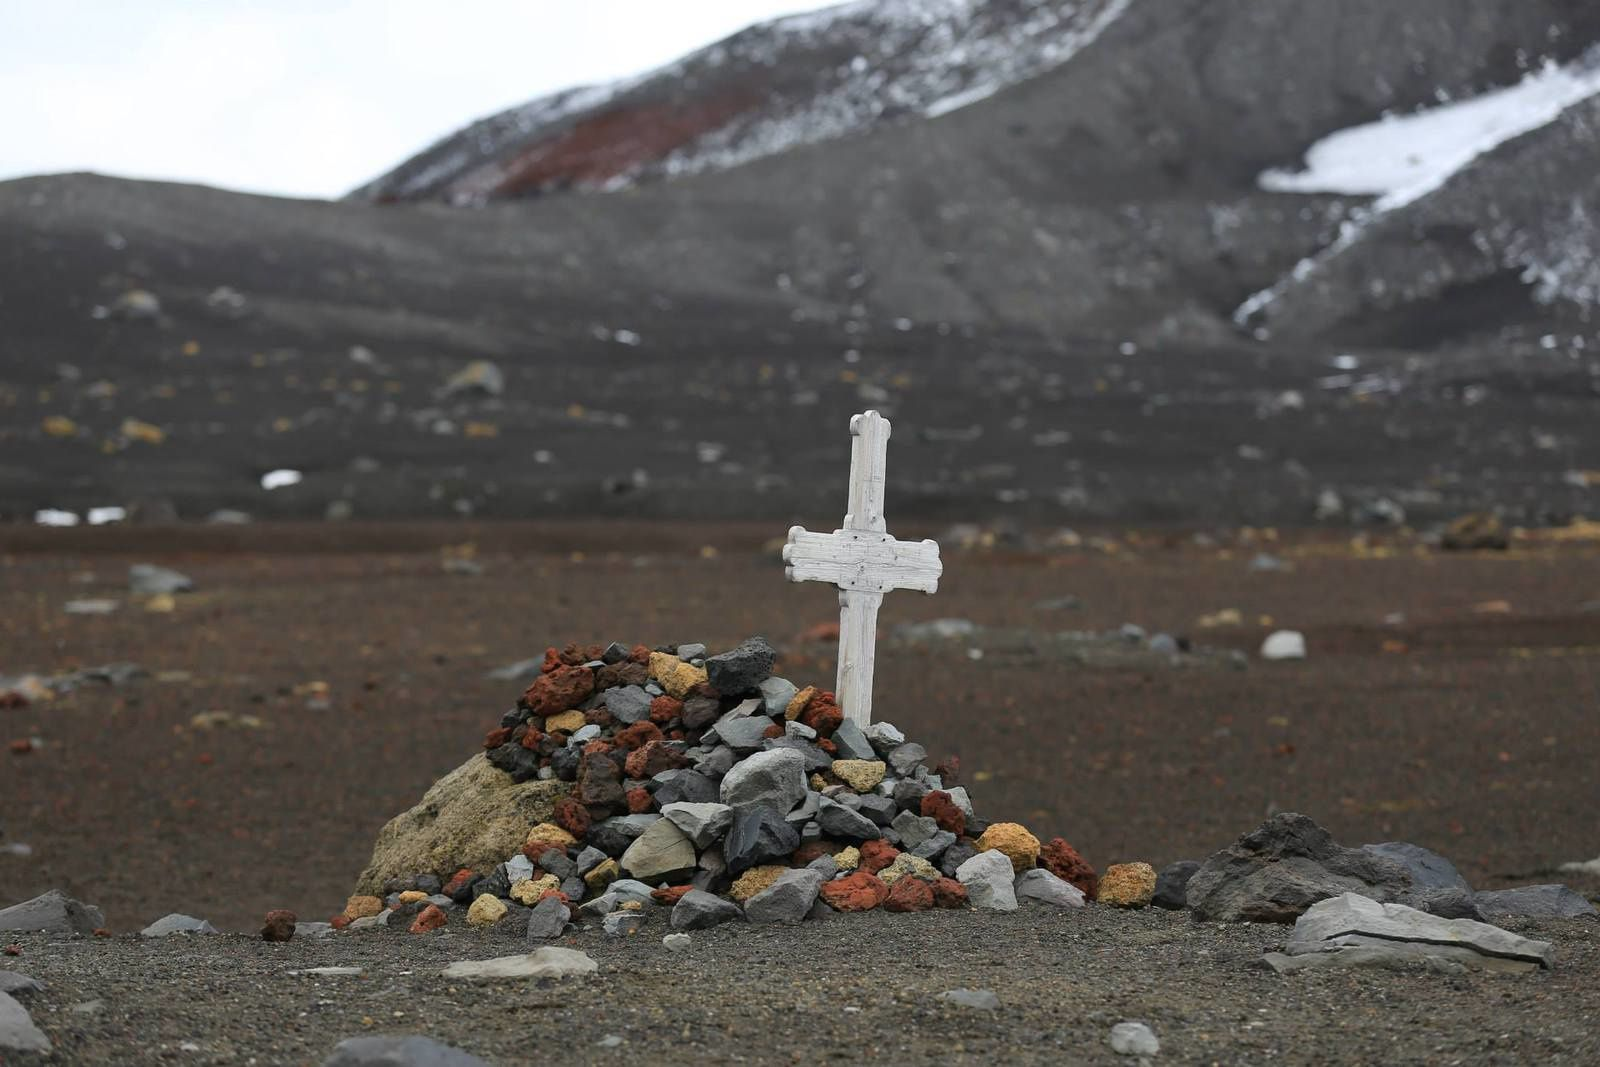 Deception Island - a place of memory - photo Antony Van Eeten 03.2014